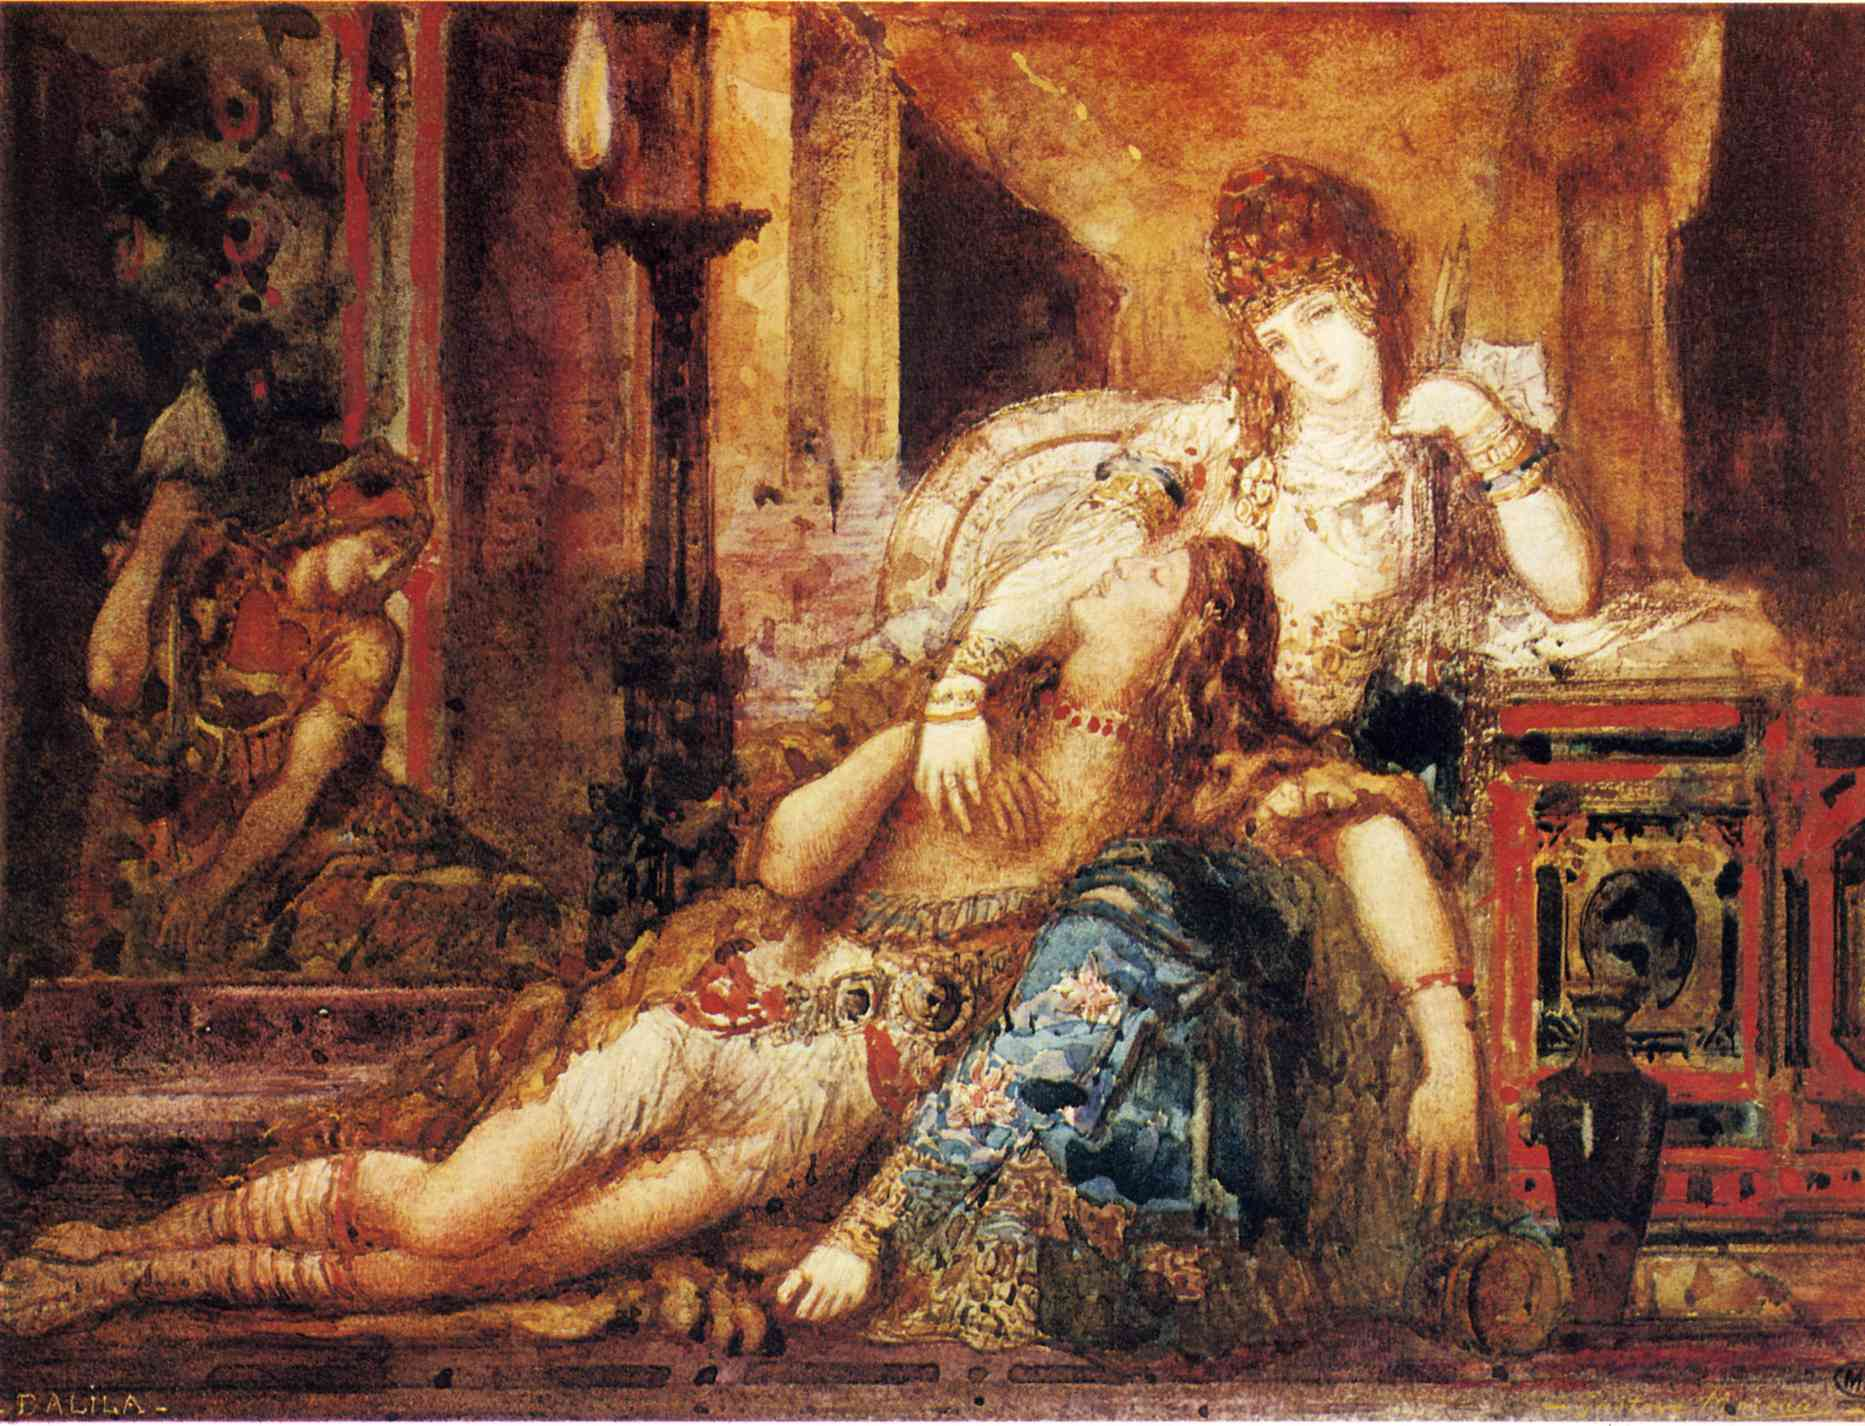 Samson and Delilah - Biblical Art on the WWW